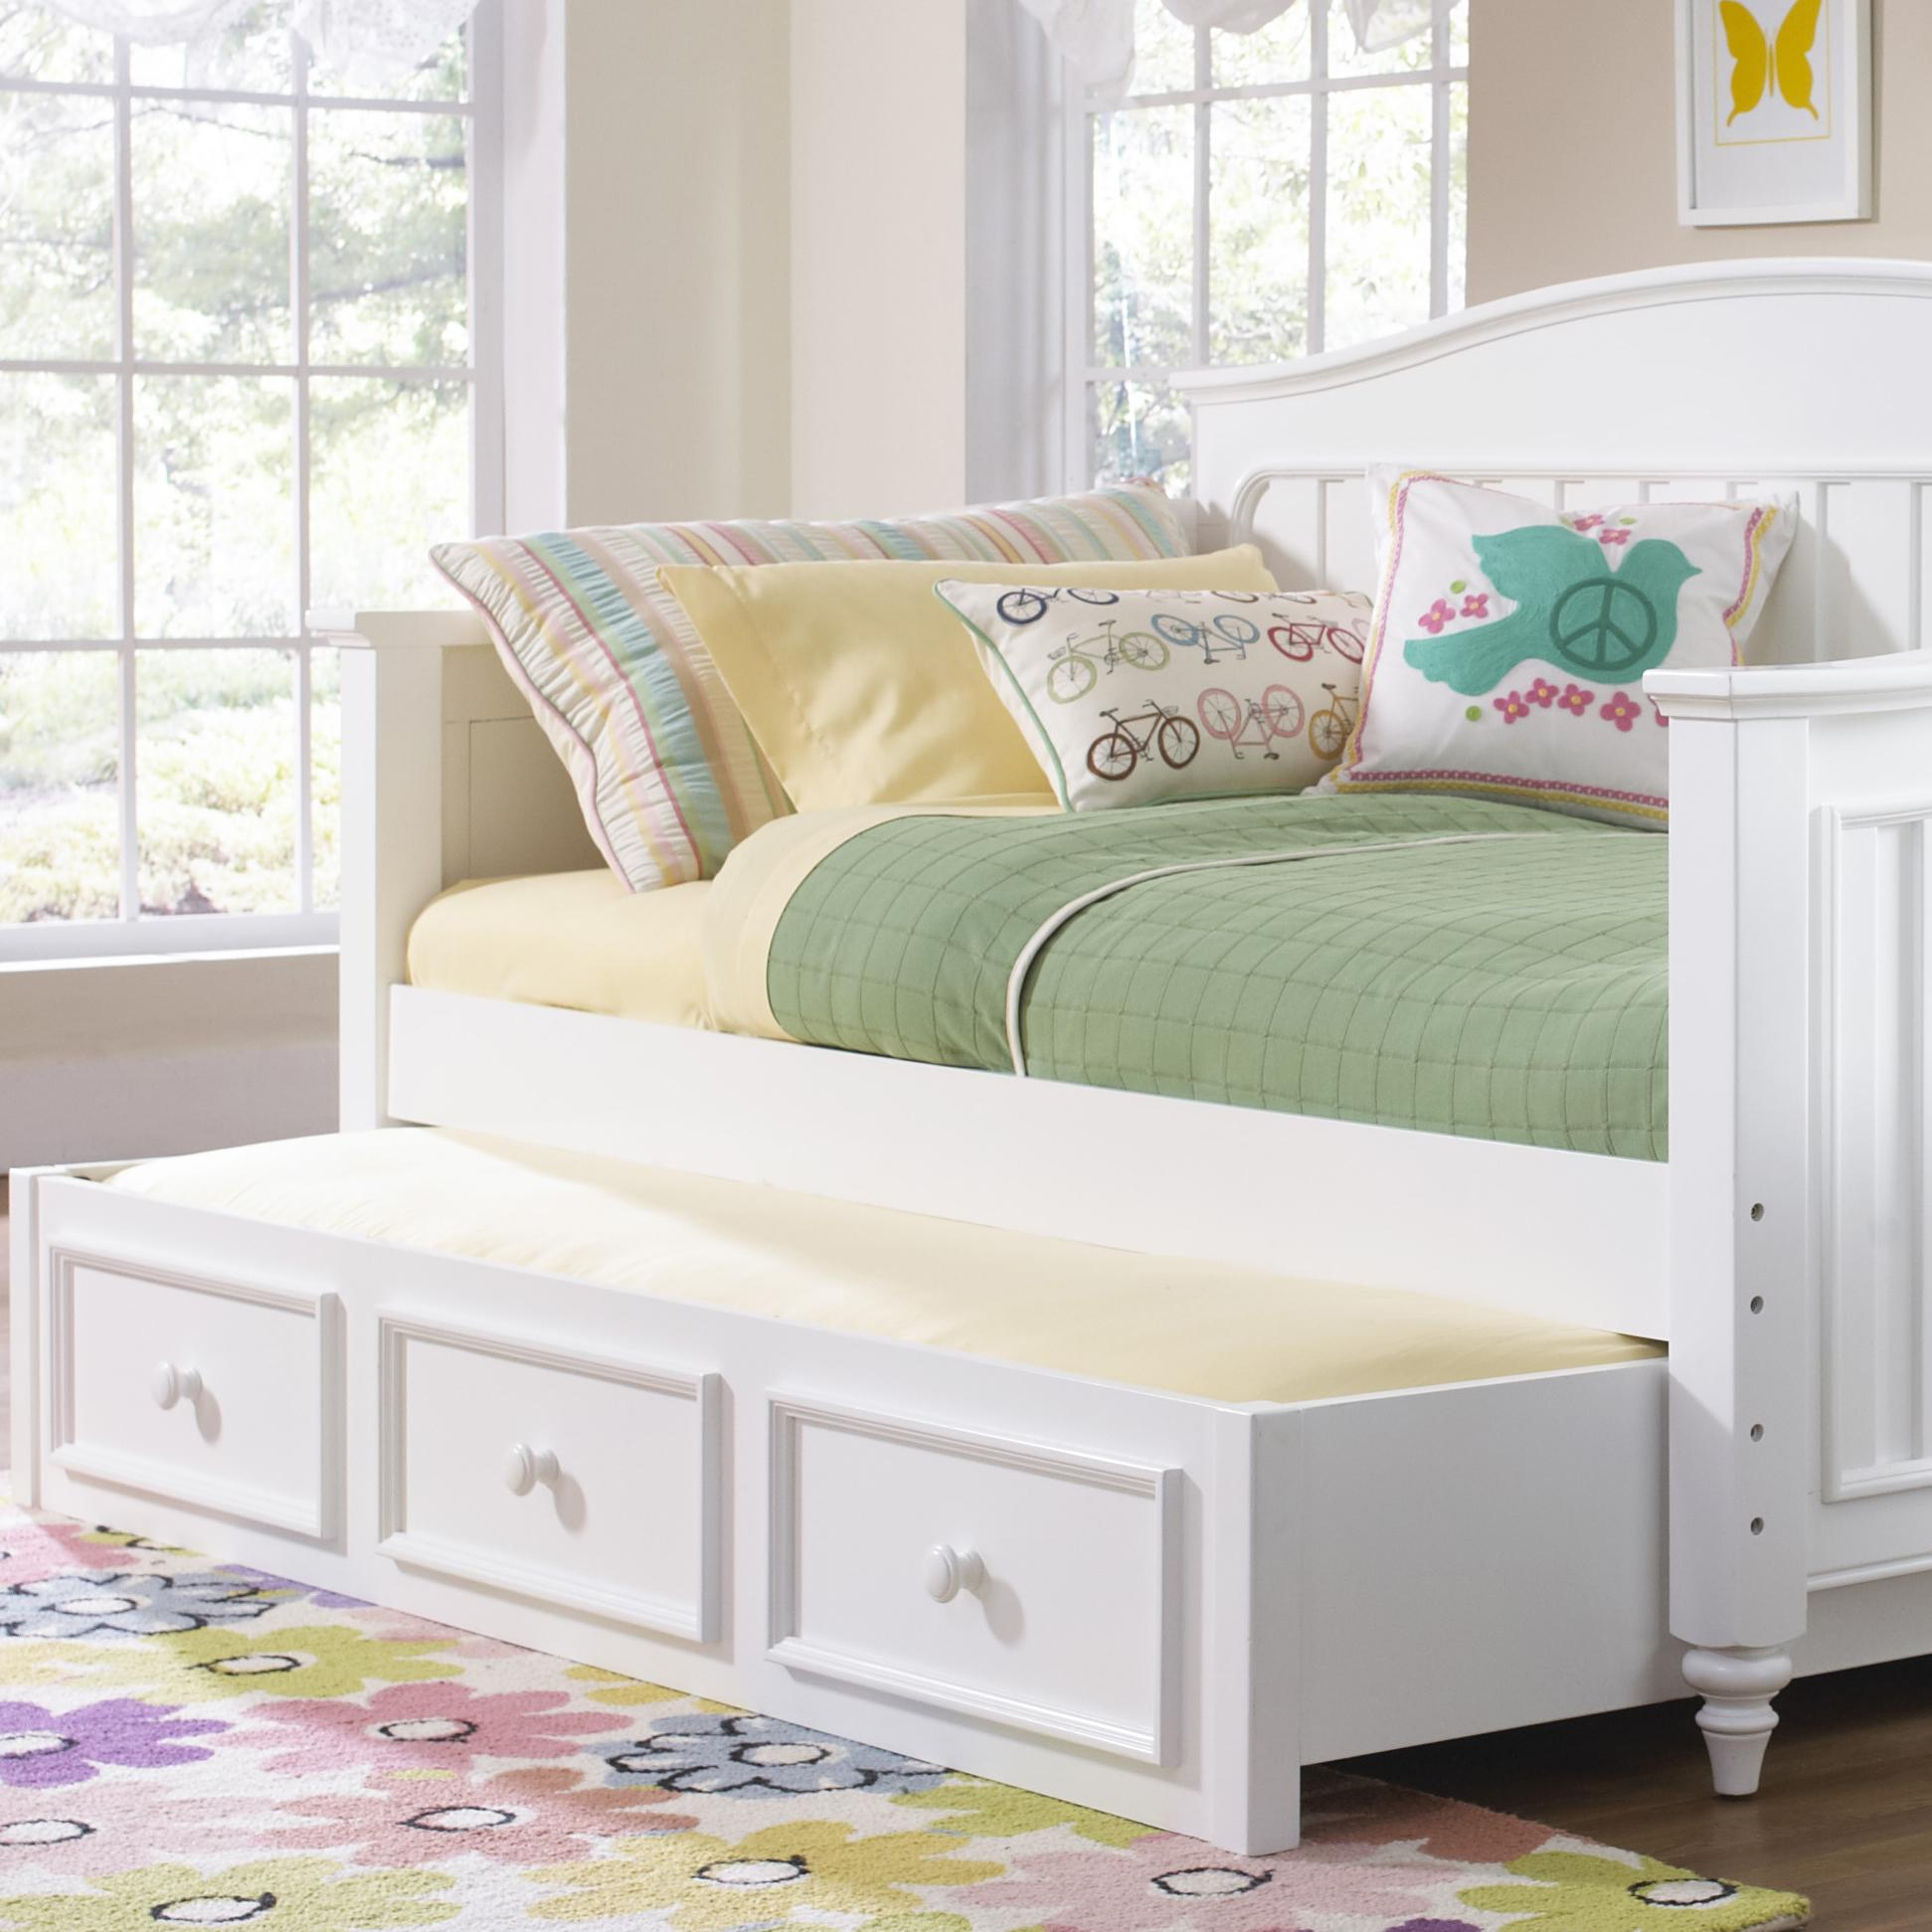 Samuel Lawrence Summertime Youth White Day Bed With